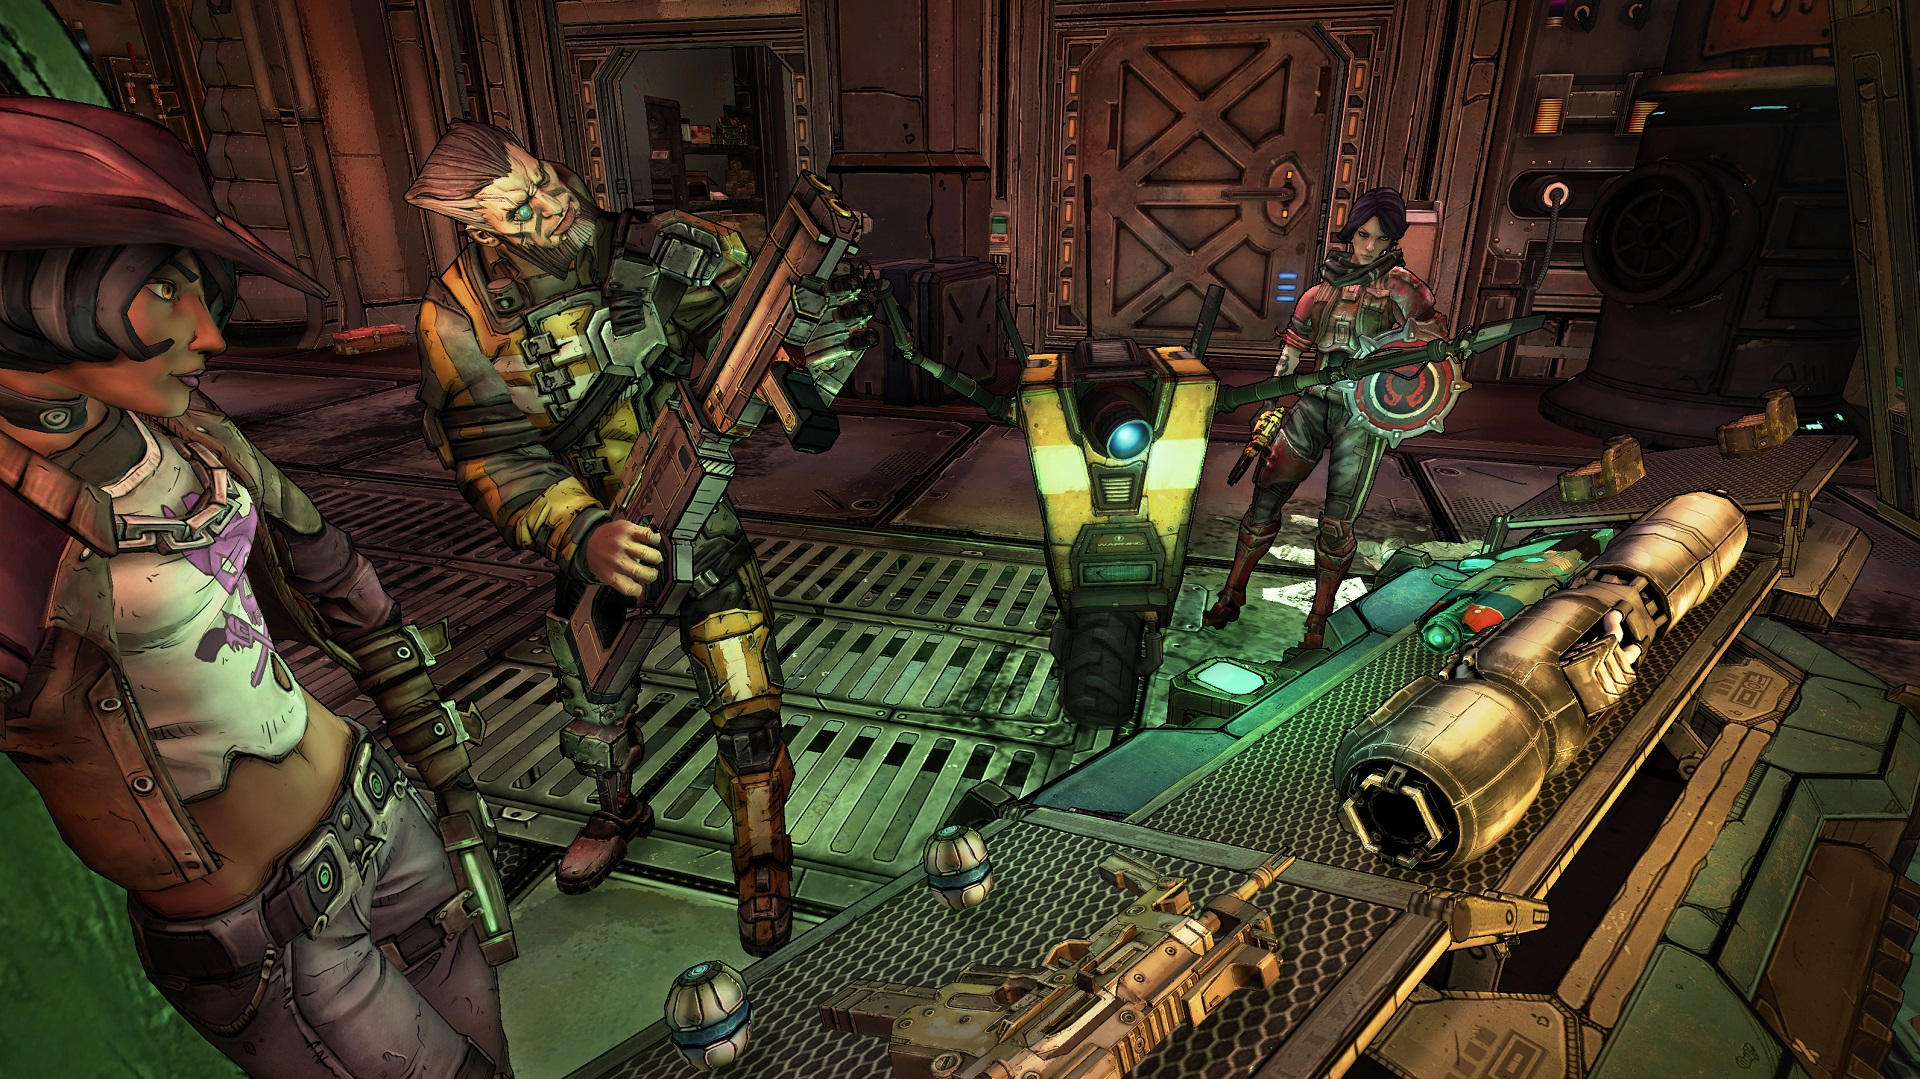 REVIEWED] Borderlands: The Pre-Sequel - Better in space